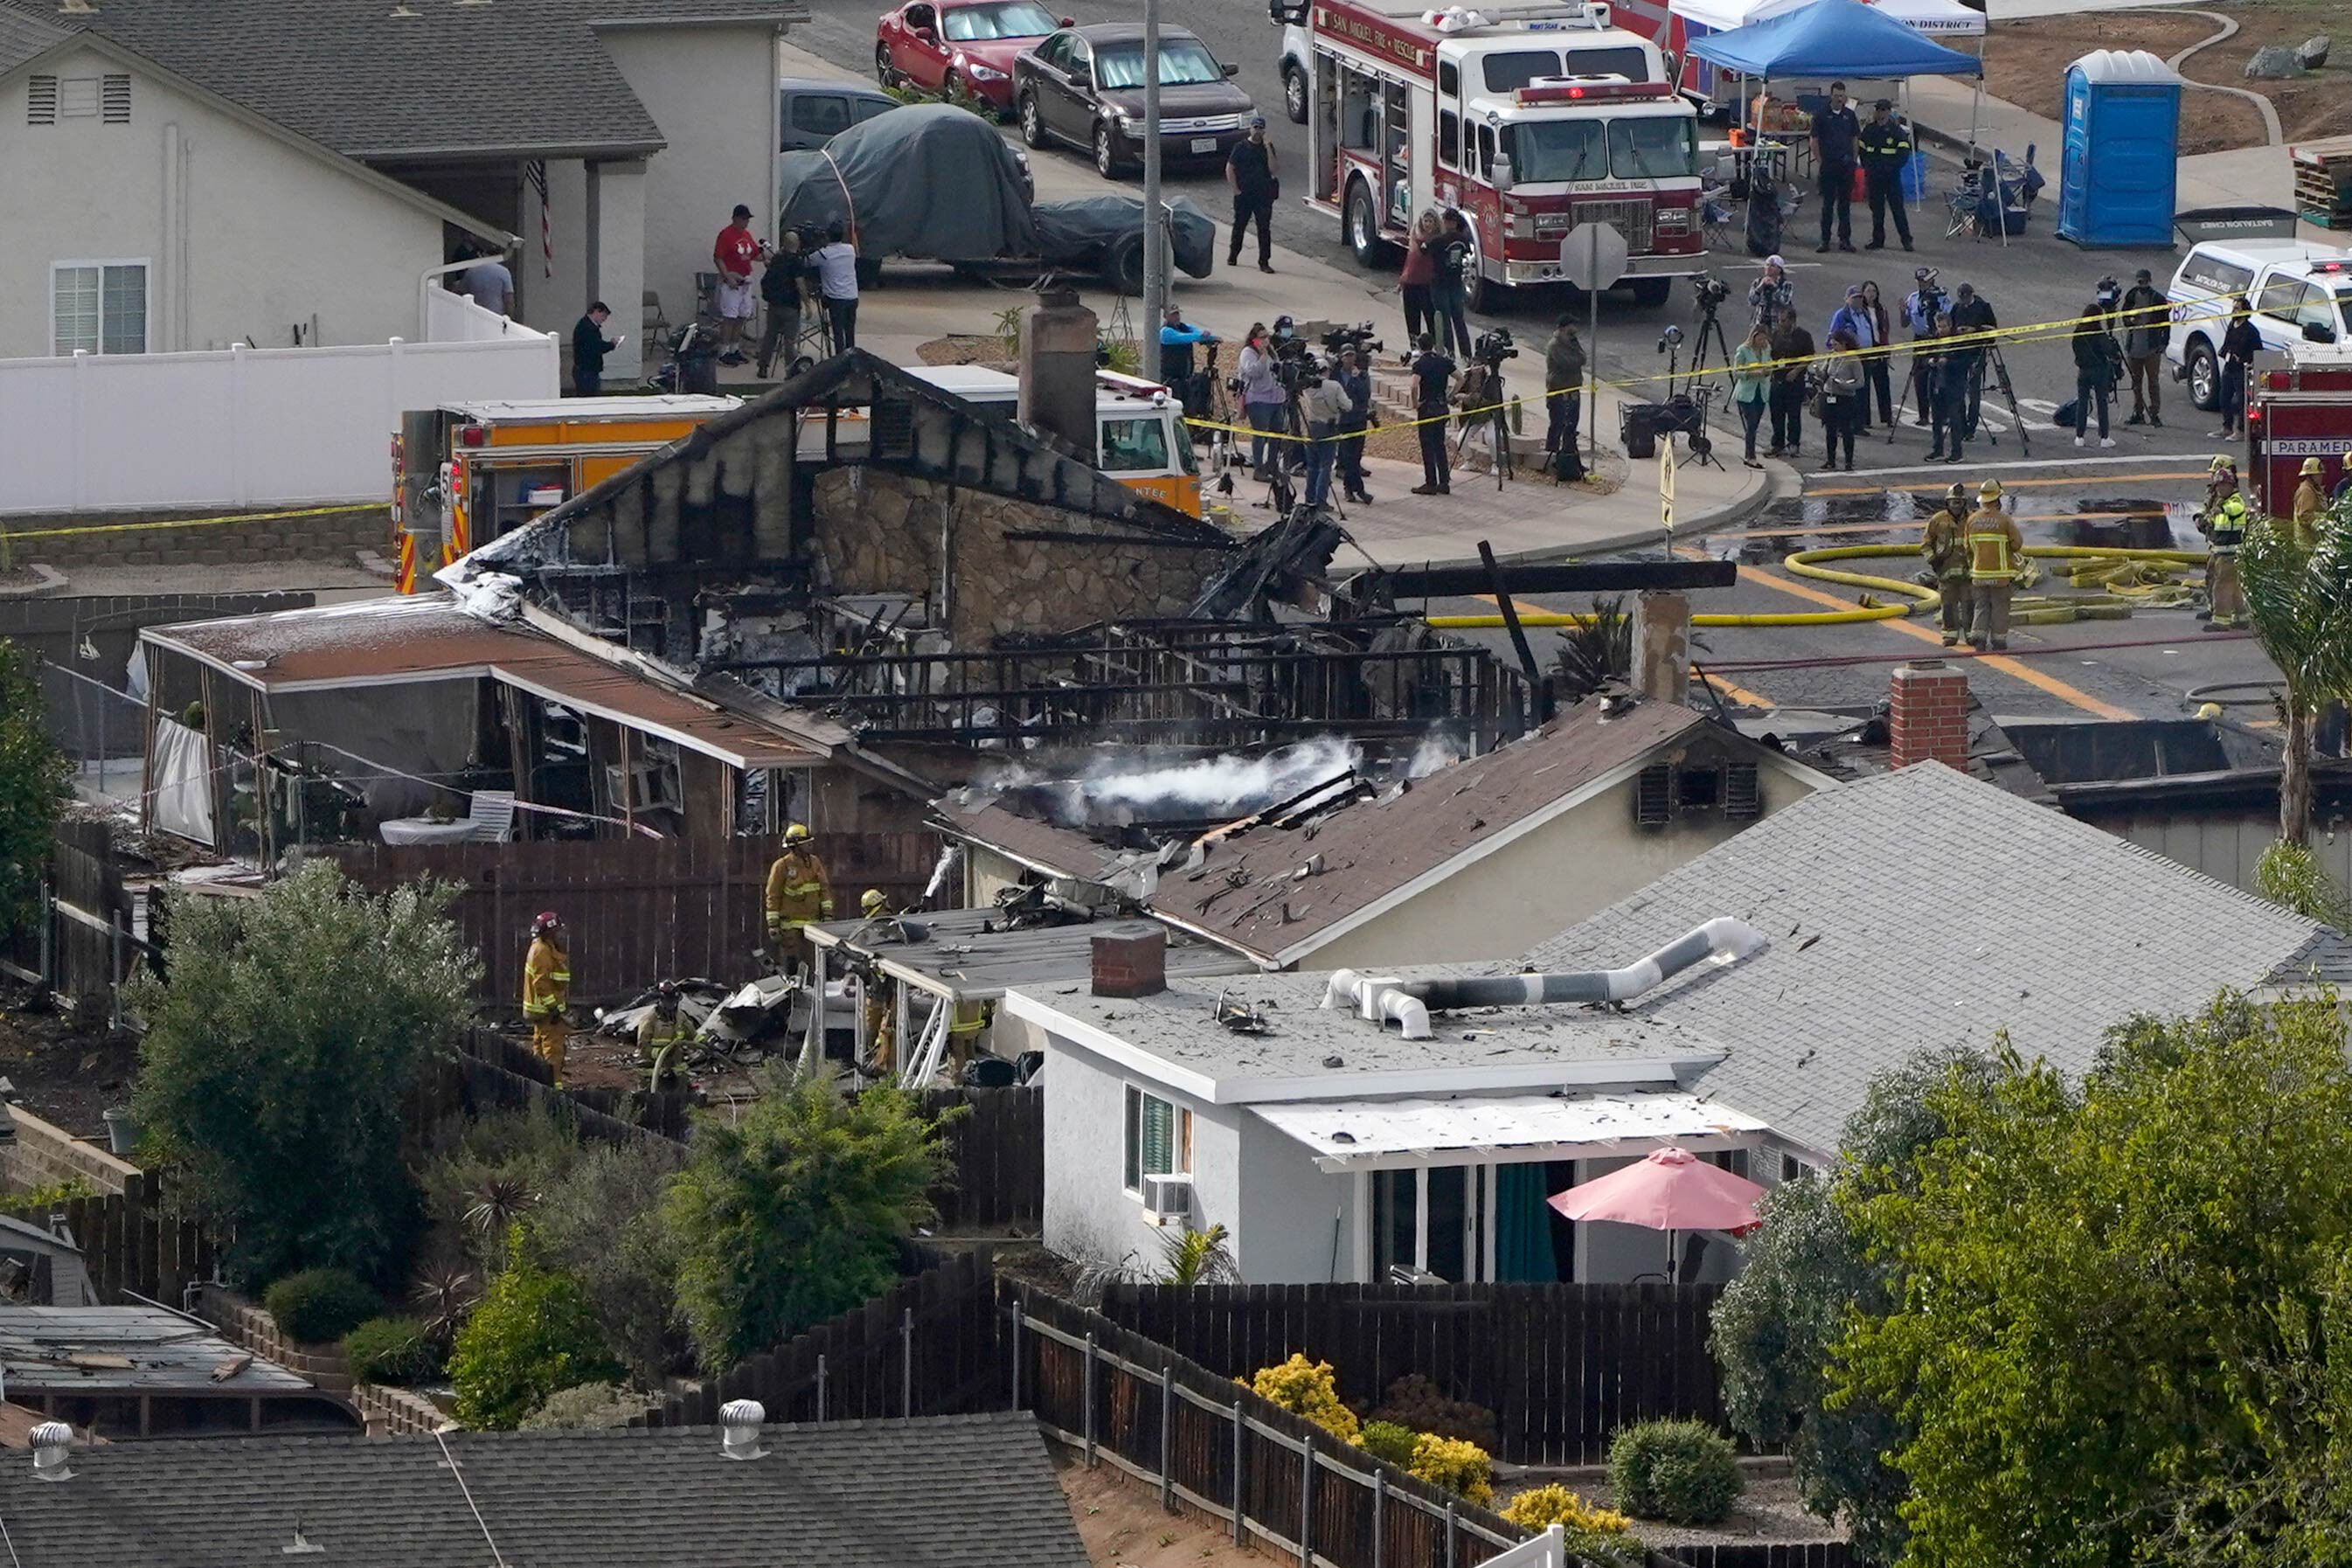 California couple's home was destroyed Monday by a small plane crash that killed at least two people